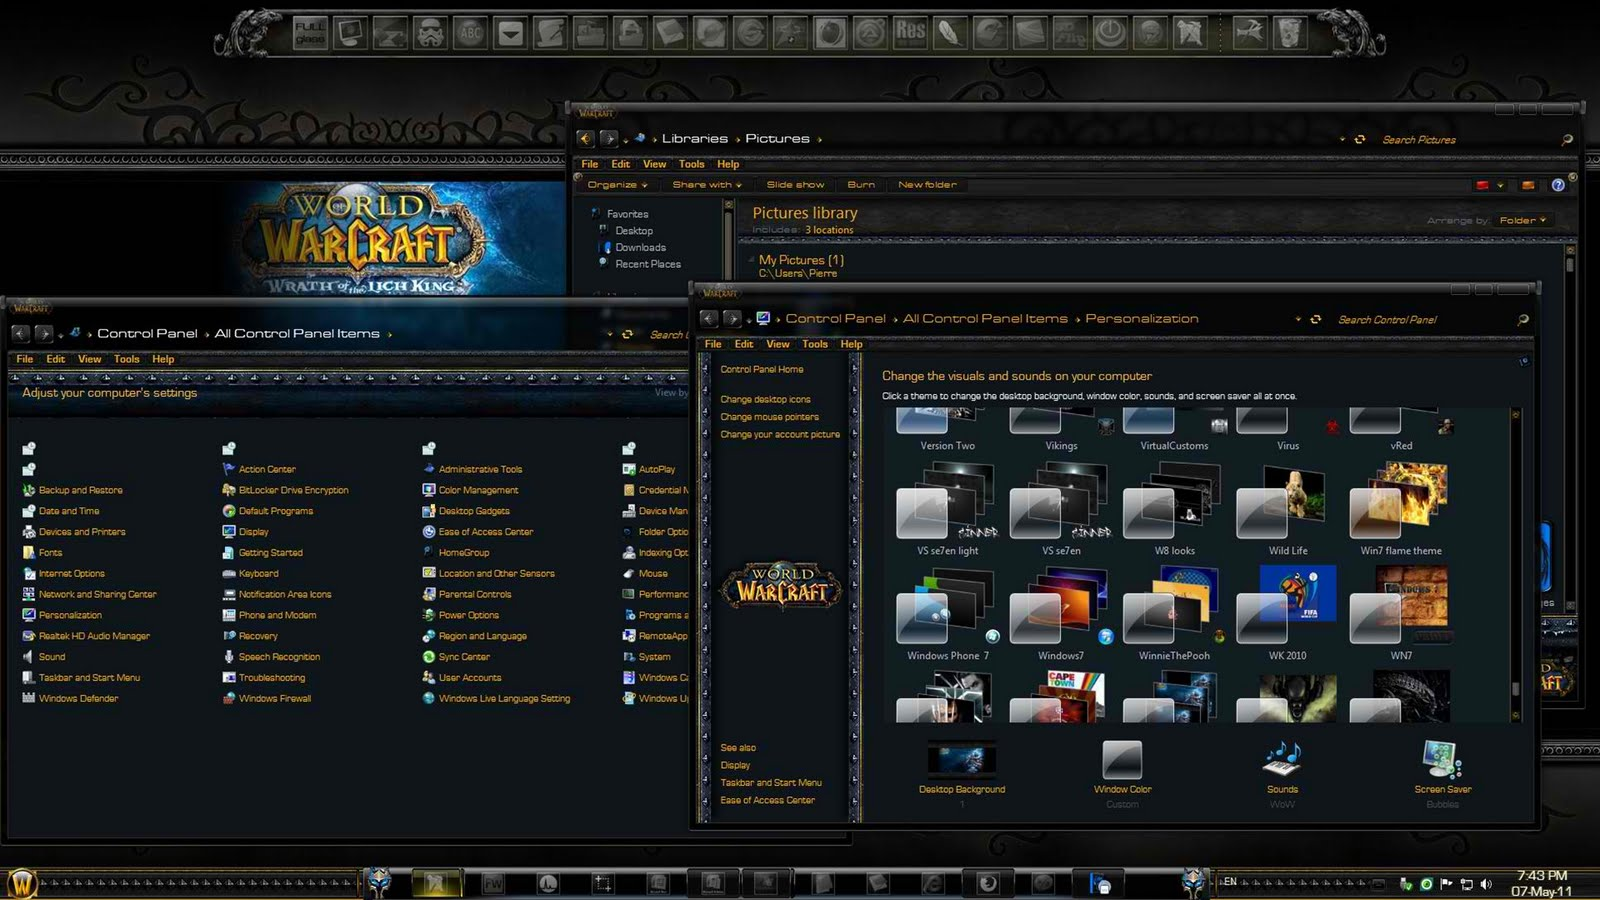 Windows10up.com Download Free Exclusive Pinoy Computer Themes FREE!: Windows Se7en World of Warcraft